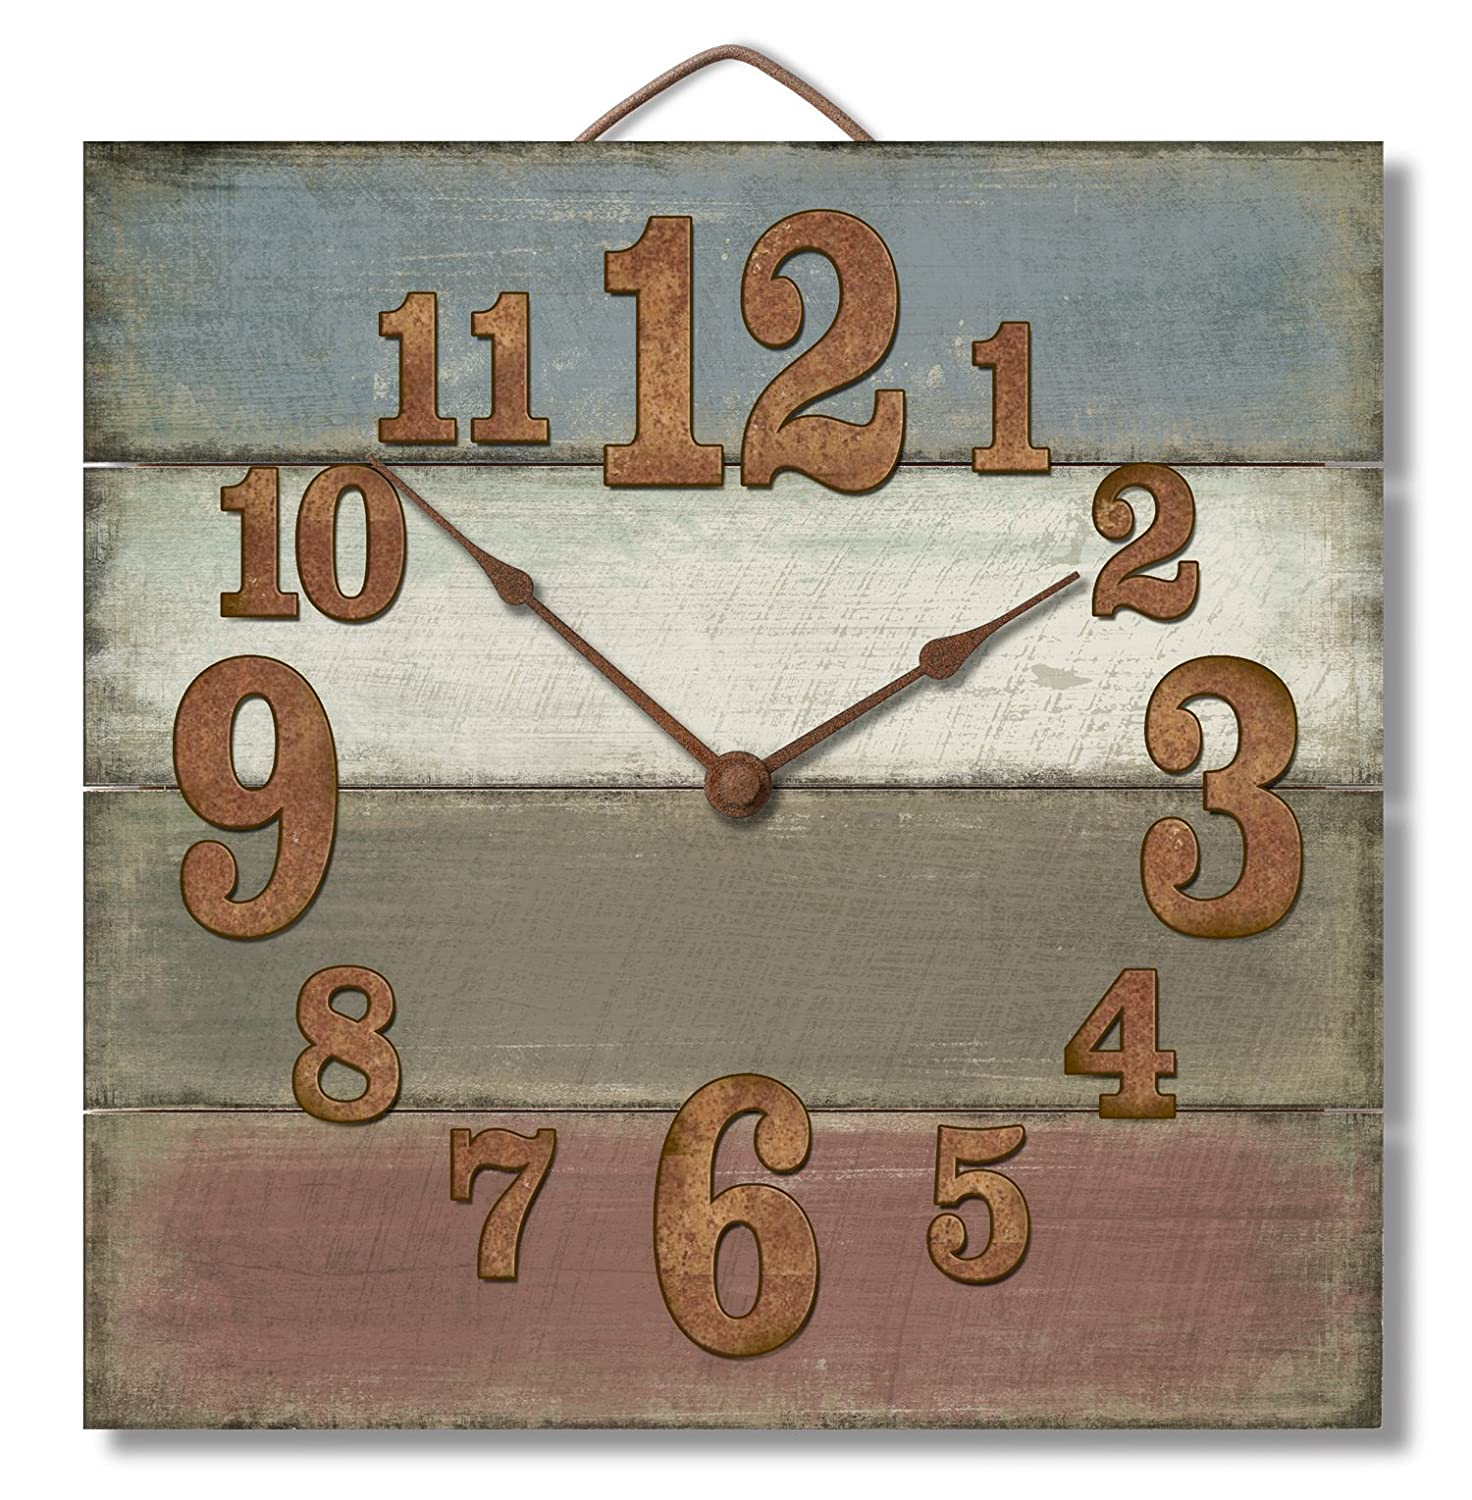 Amazon highland graphics 12 rustic turquoise blue wall clock amazon highland graphics 12 rustic turquoise blue wall clock made in usa from reclaimed wood slats home kitchen amipublicfo Image collections